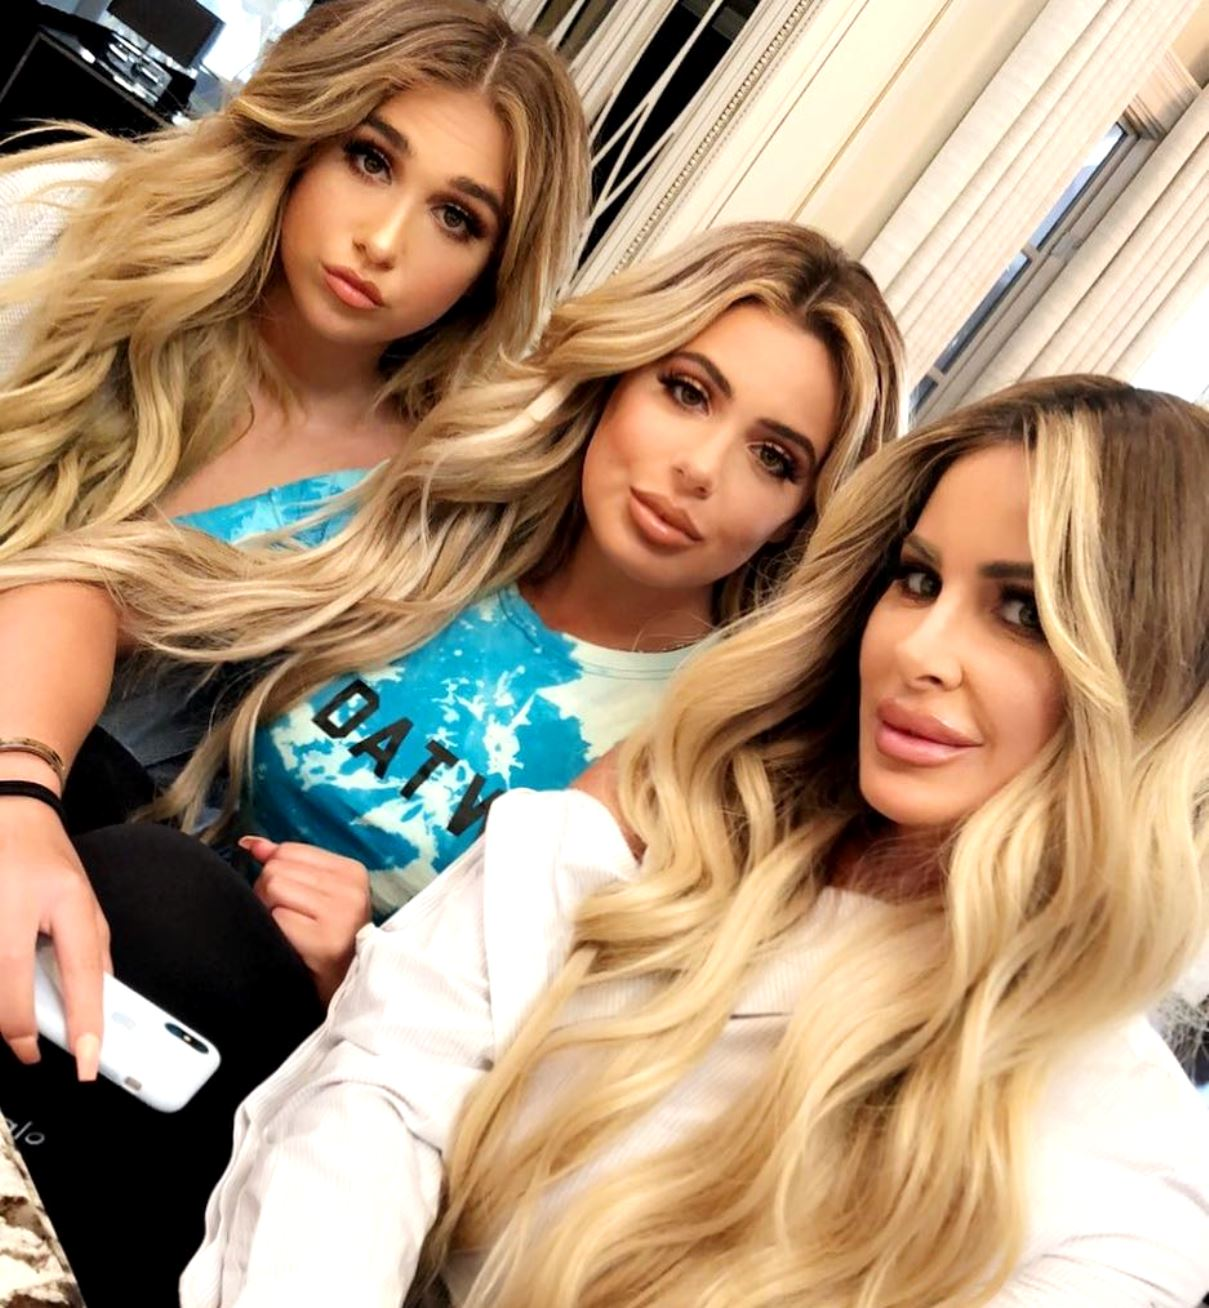 Kim Zolciak Starts Makeup Line KAB Comestics With Ariana and Brielle Biermann